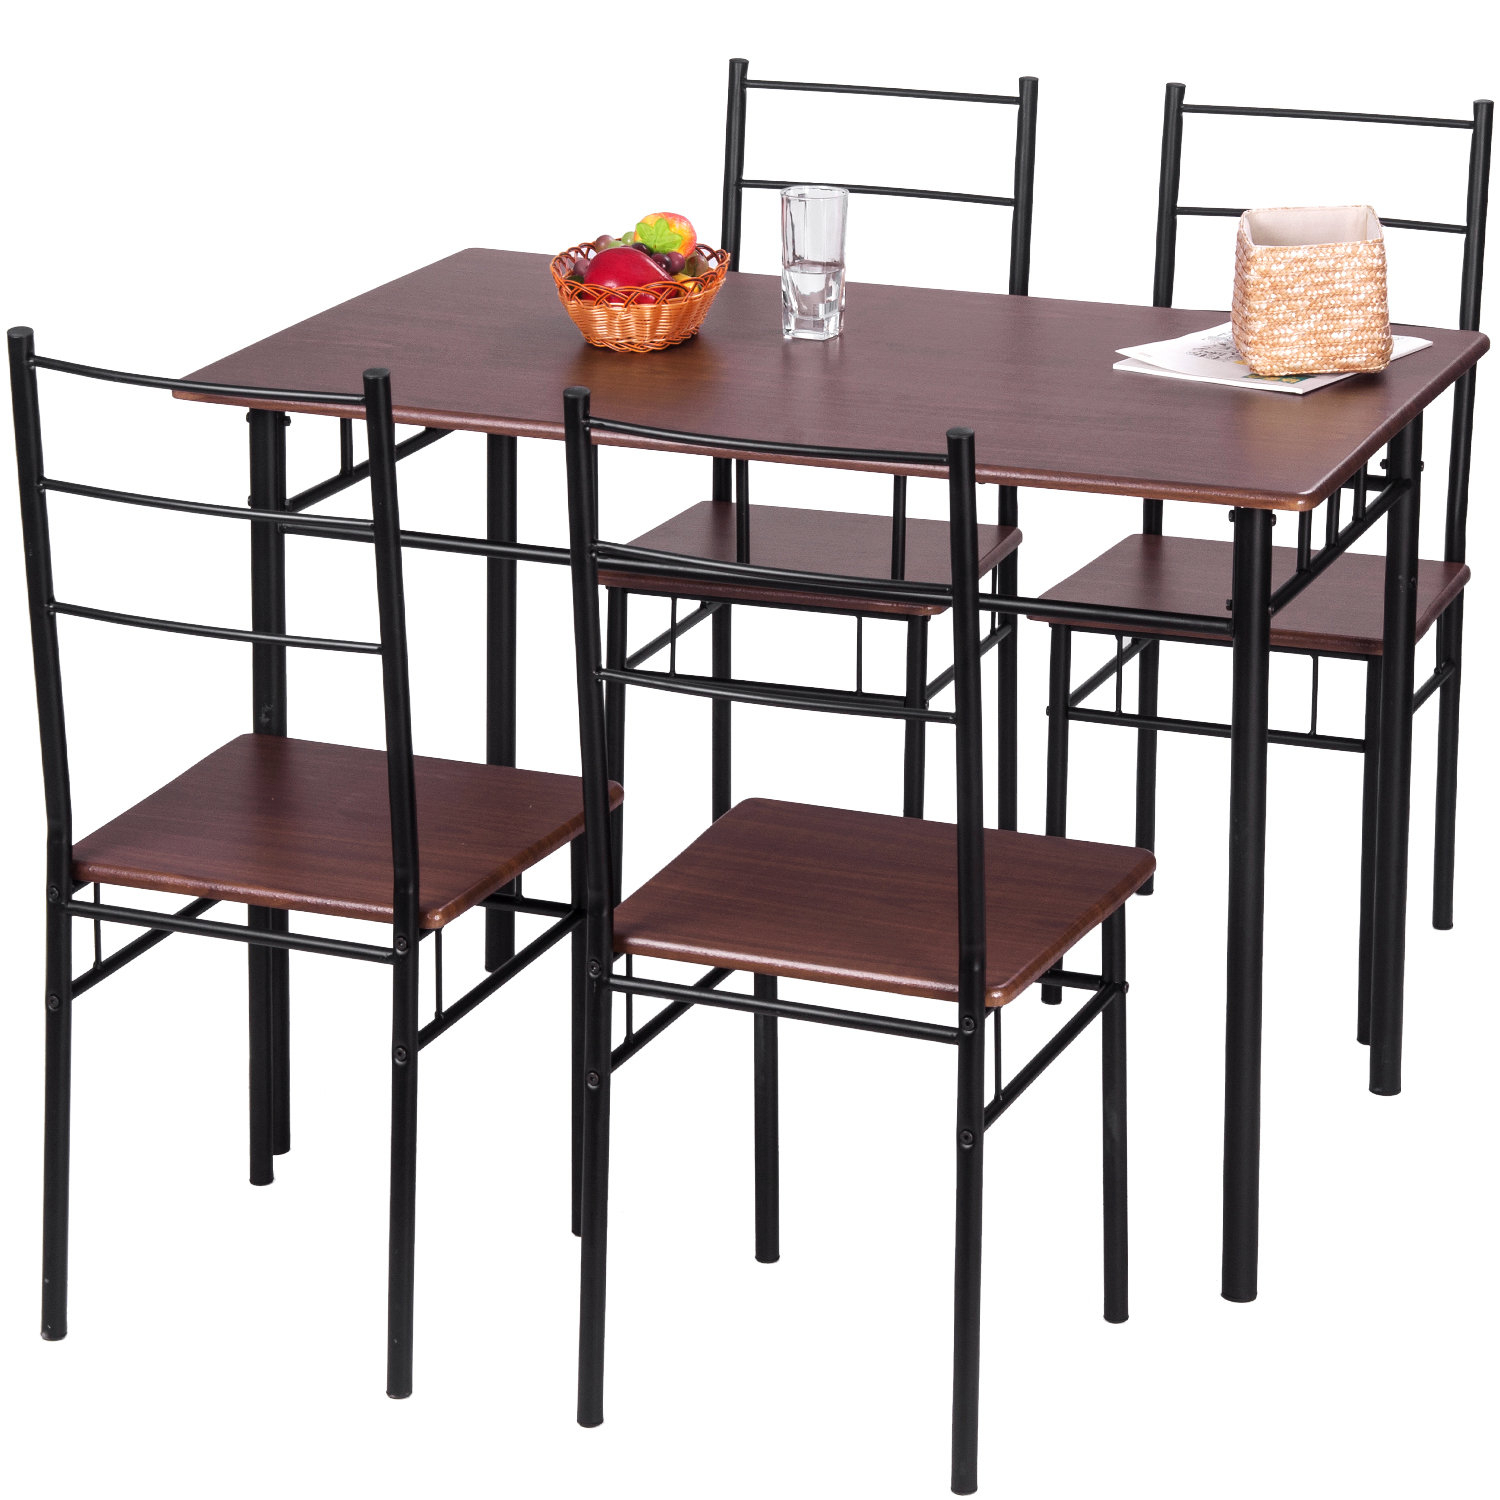 5 Piece Breakfast Nook Dining Set Regarding Most Recent Mulvey 5 Piece Dining Sets (Image 1 of 20)